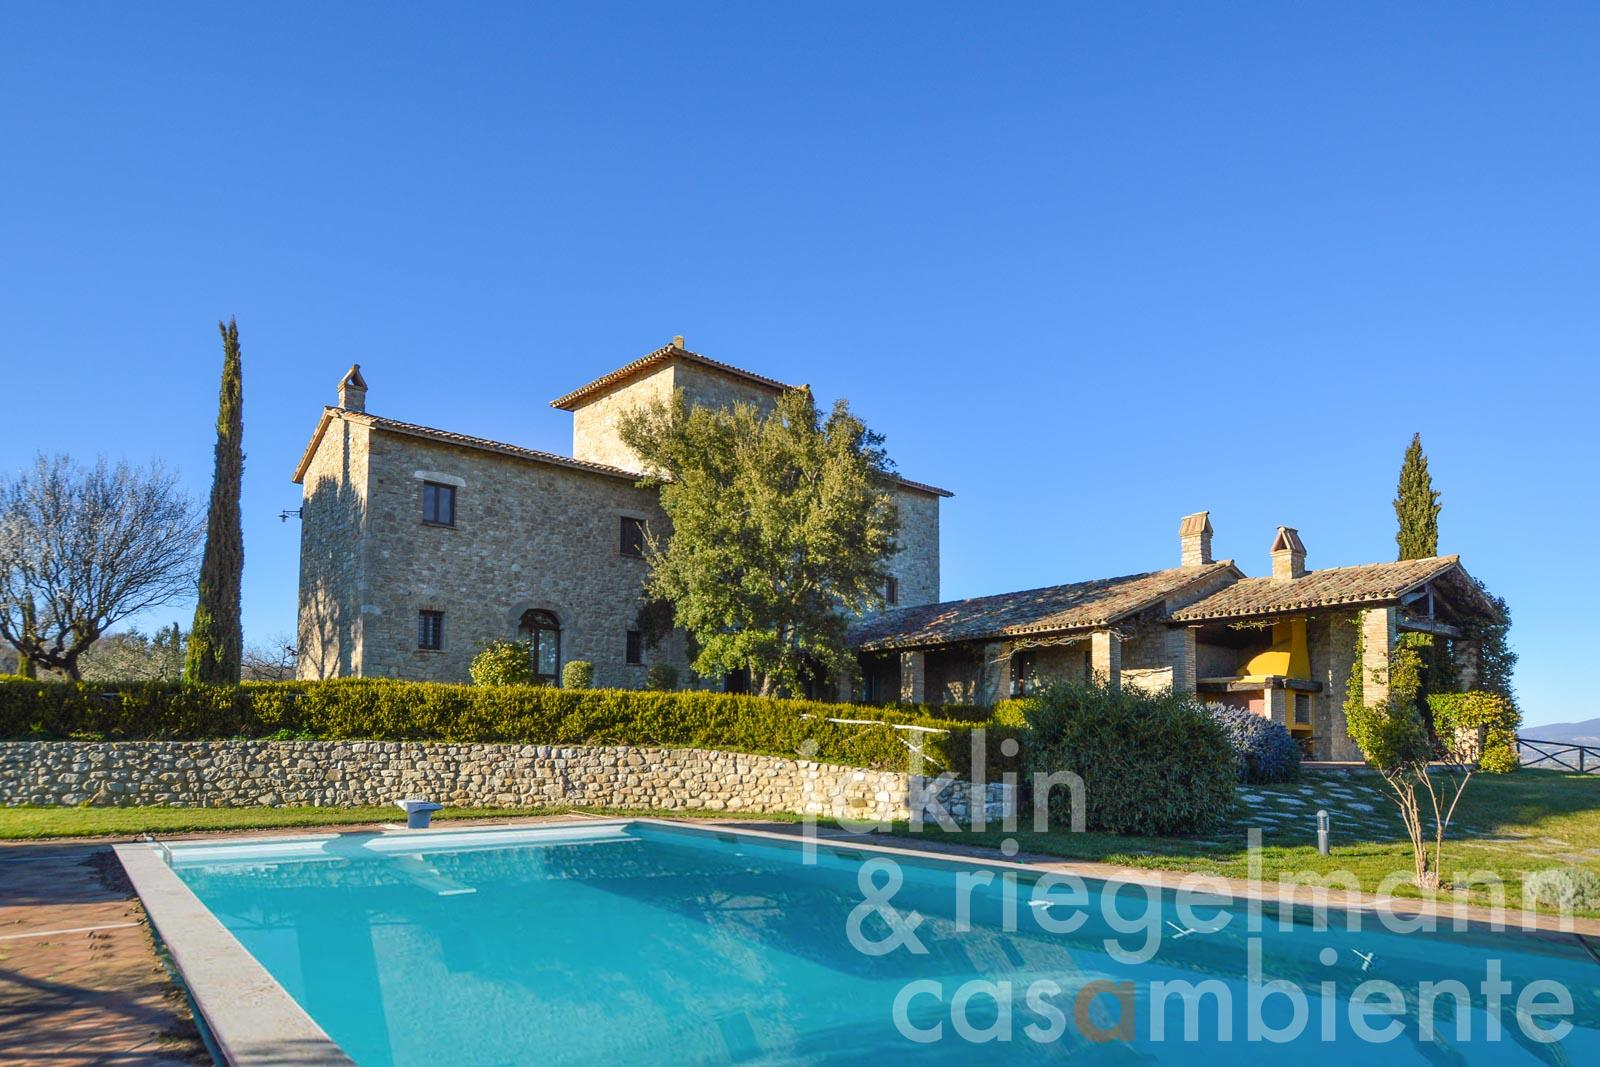 The beautifully renovated 14th century Tenuta with 360° view near Todi in Umbria